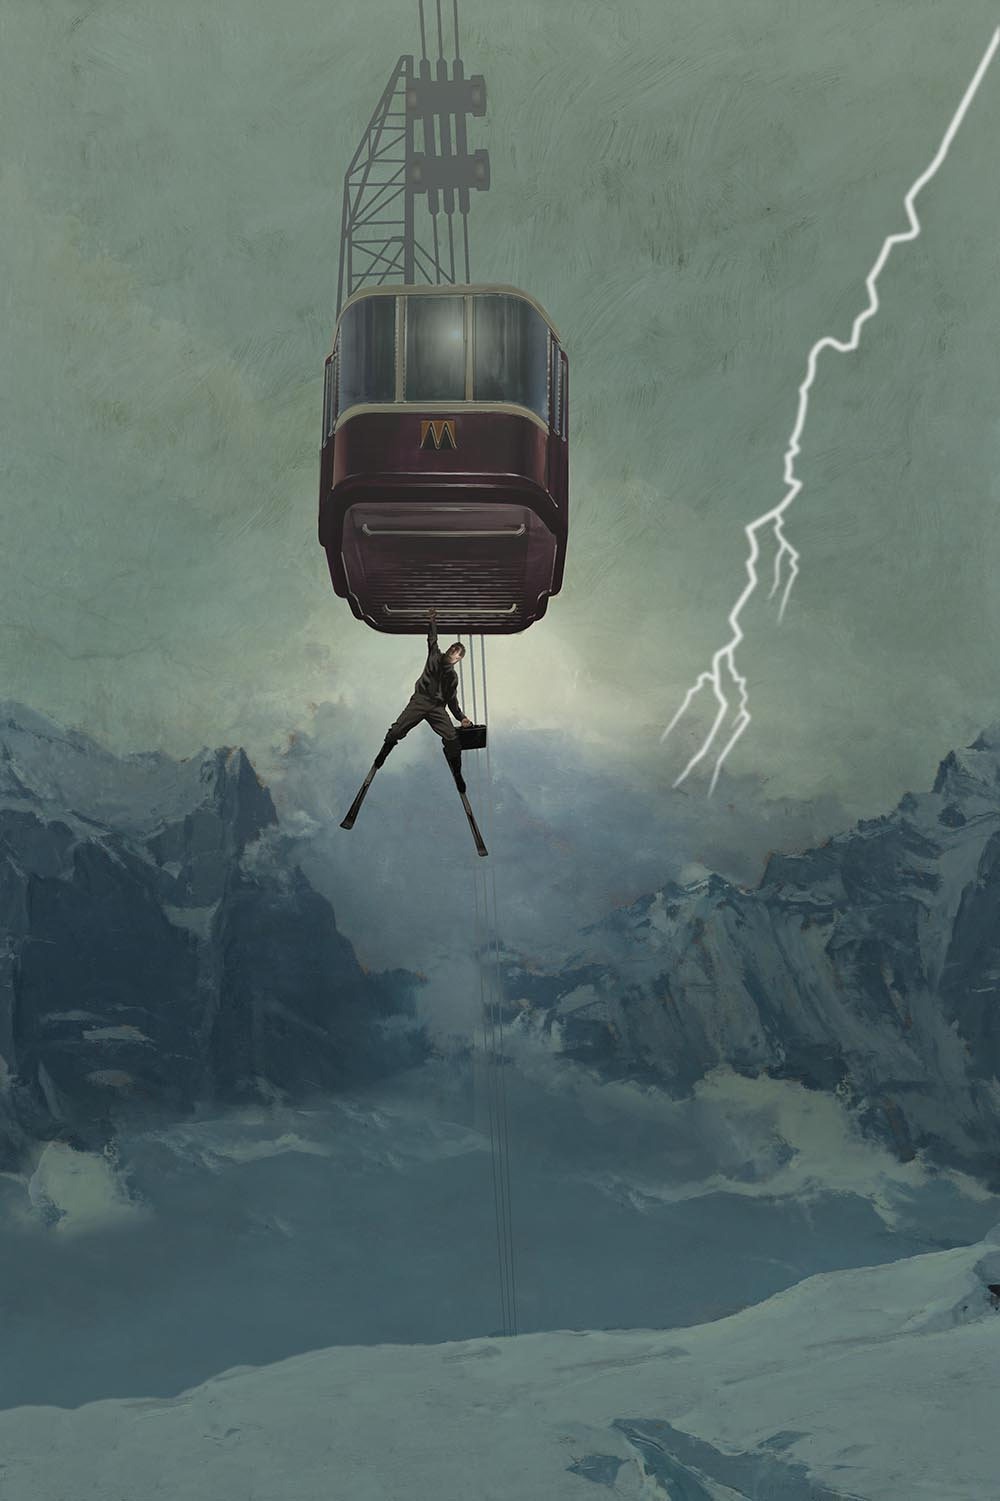 Milk Tray Cable Car by Pastiche